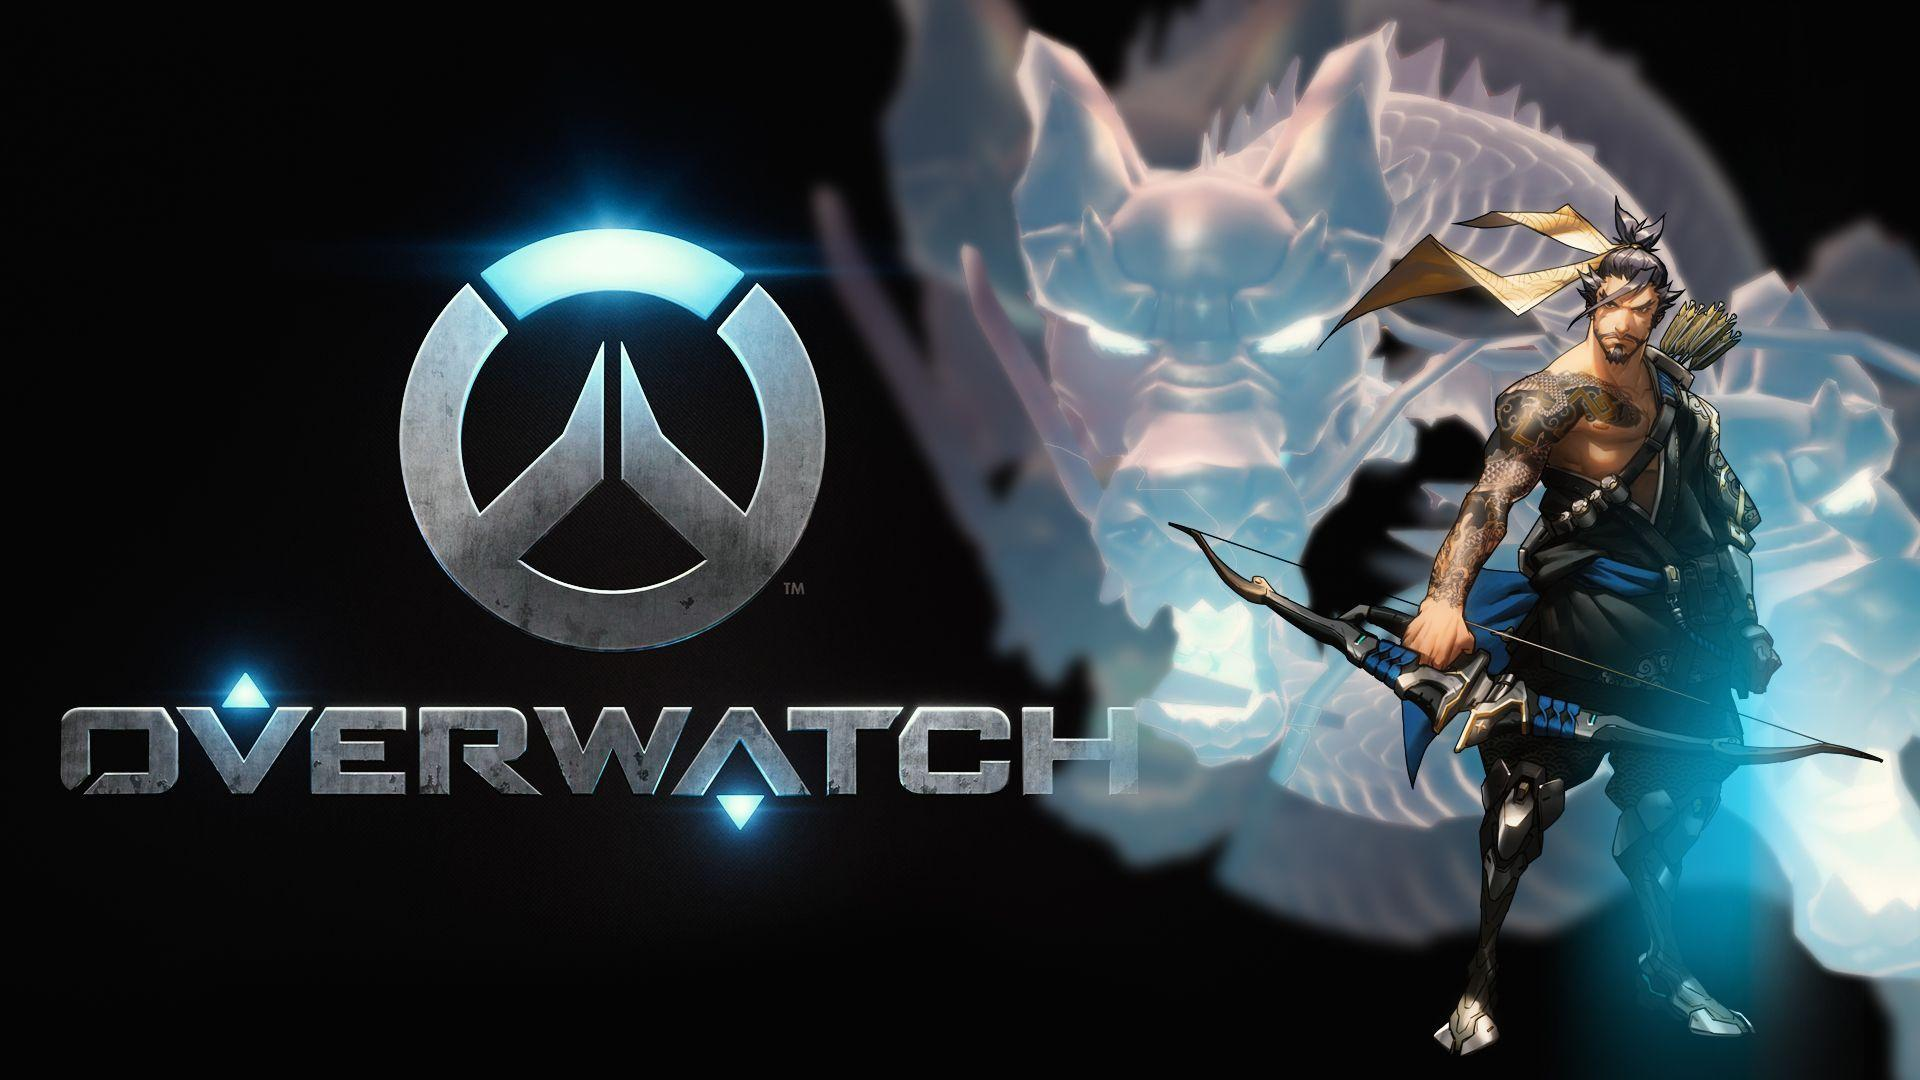 [Download] 40+ Latest Overwatch Wallpaper Collections In HD